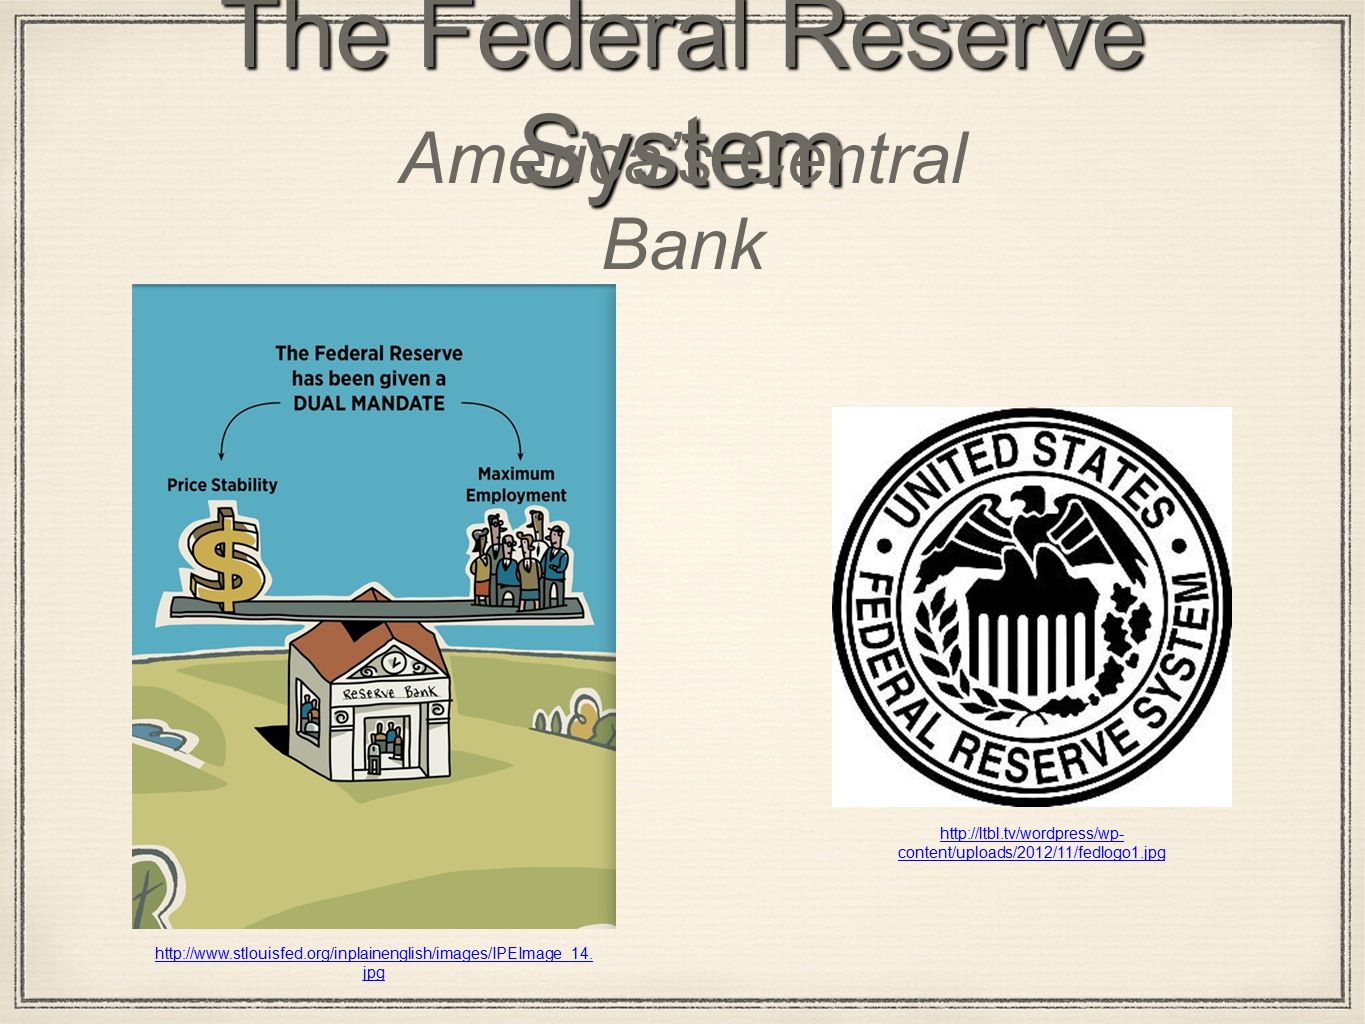 The Federal Reserve System America's Central Bank   content/uploads/2012/11/fedlogo1.jpg